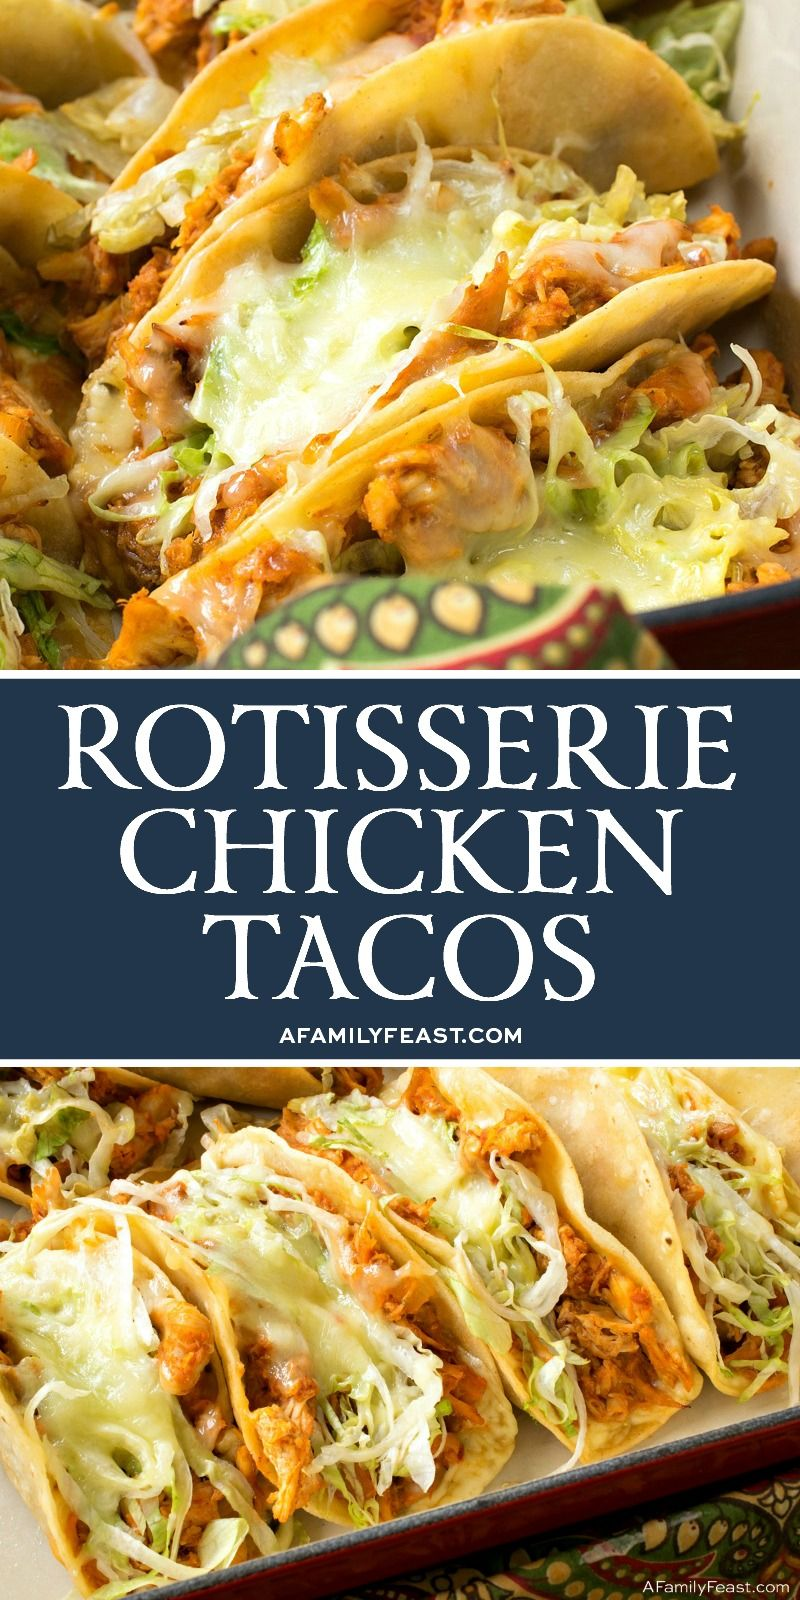 Easy Rotisserie Chicken Tacos images